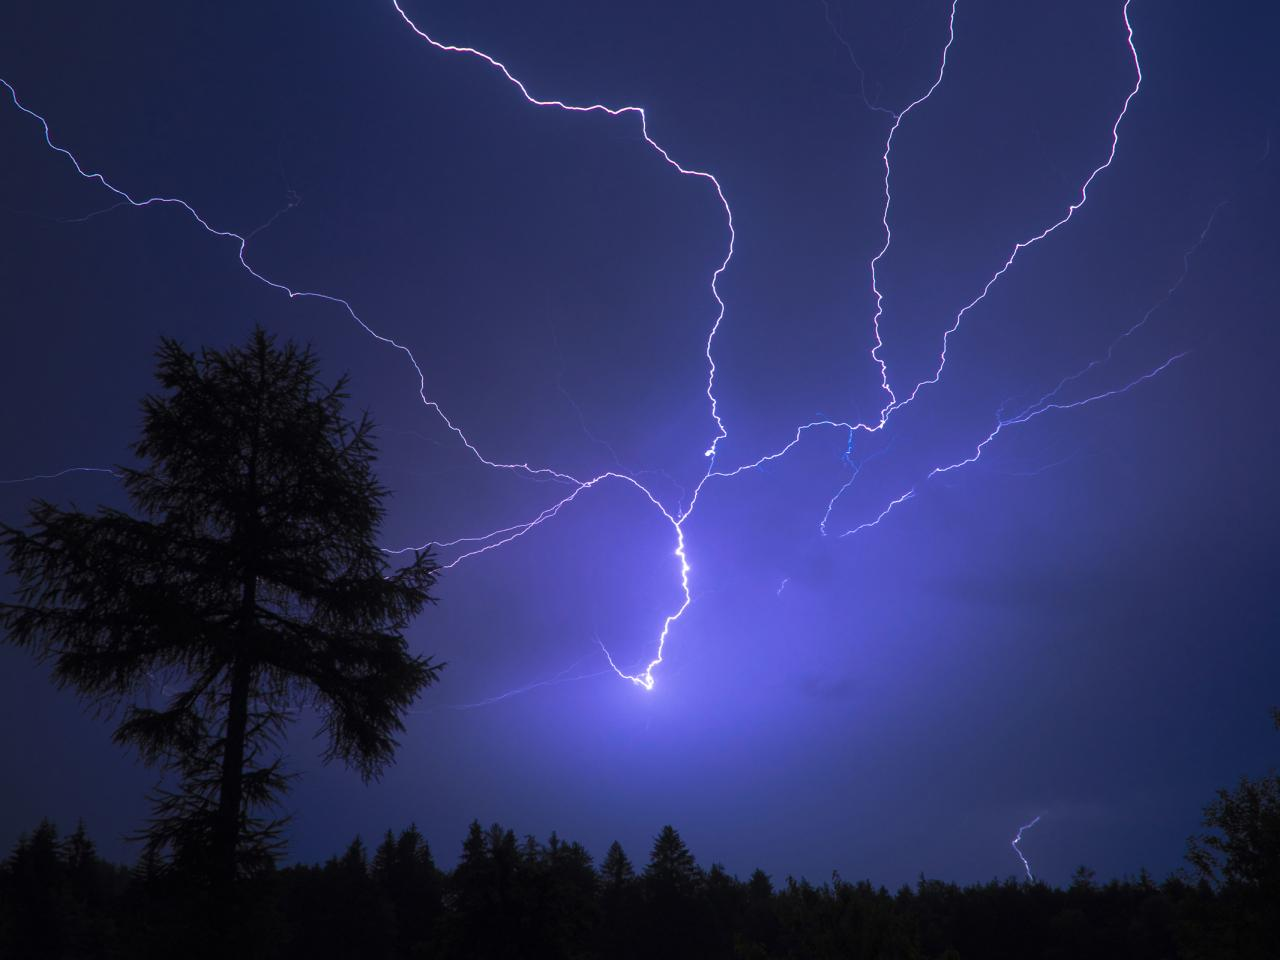 Blue-Night-Sky-Stormy-Beautiful-Dark-Lightning-Nature-65348